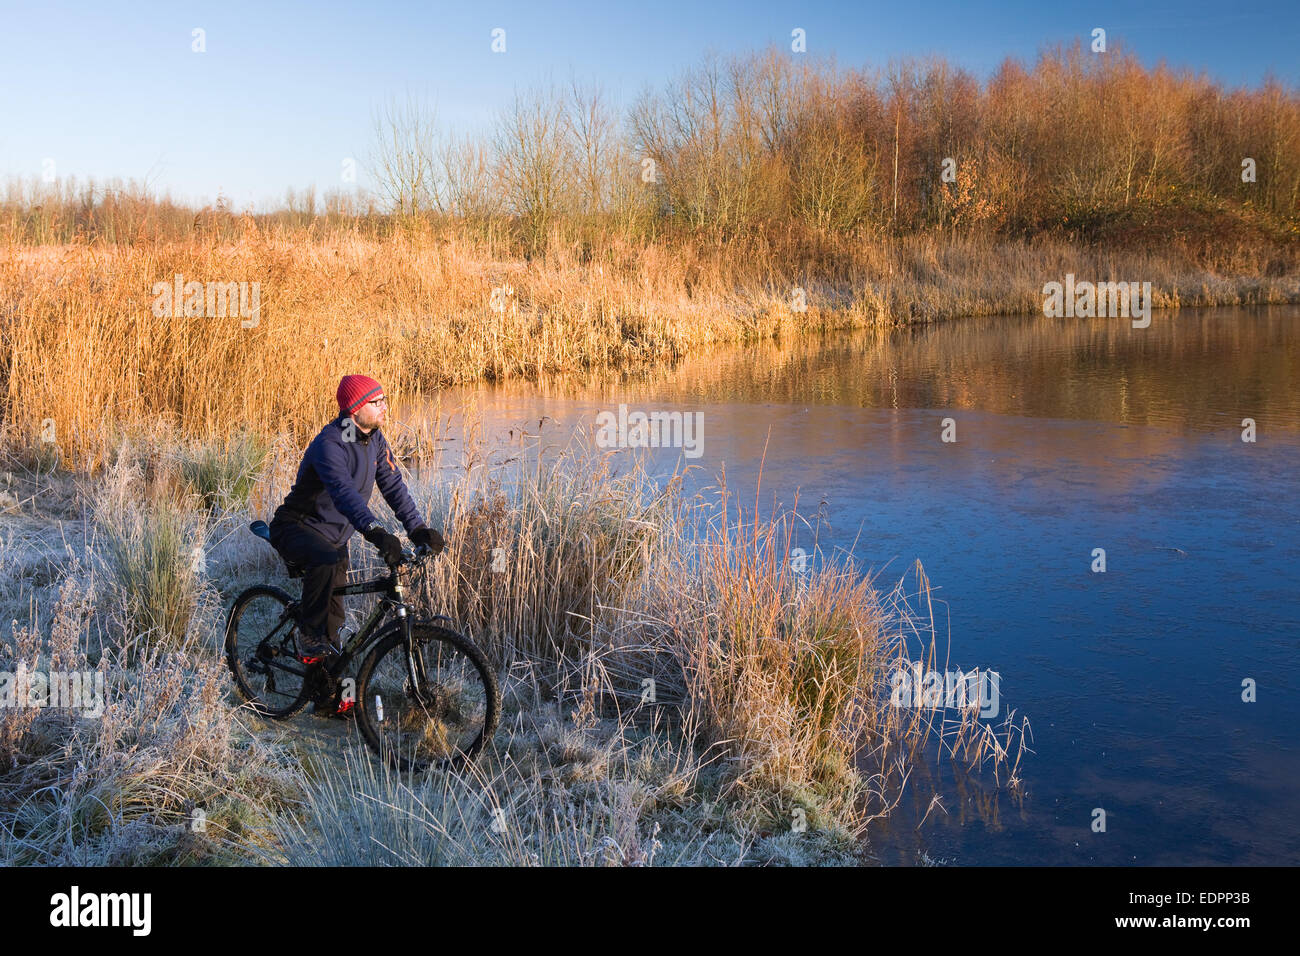 Waters Edge Country Park, Barton-upon-Humber, North Lincolnshire, UK. 30th December, 2014. UK weather. - Stock Image